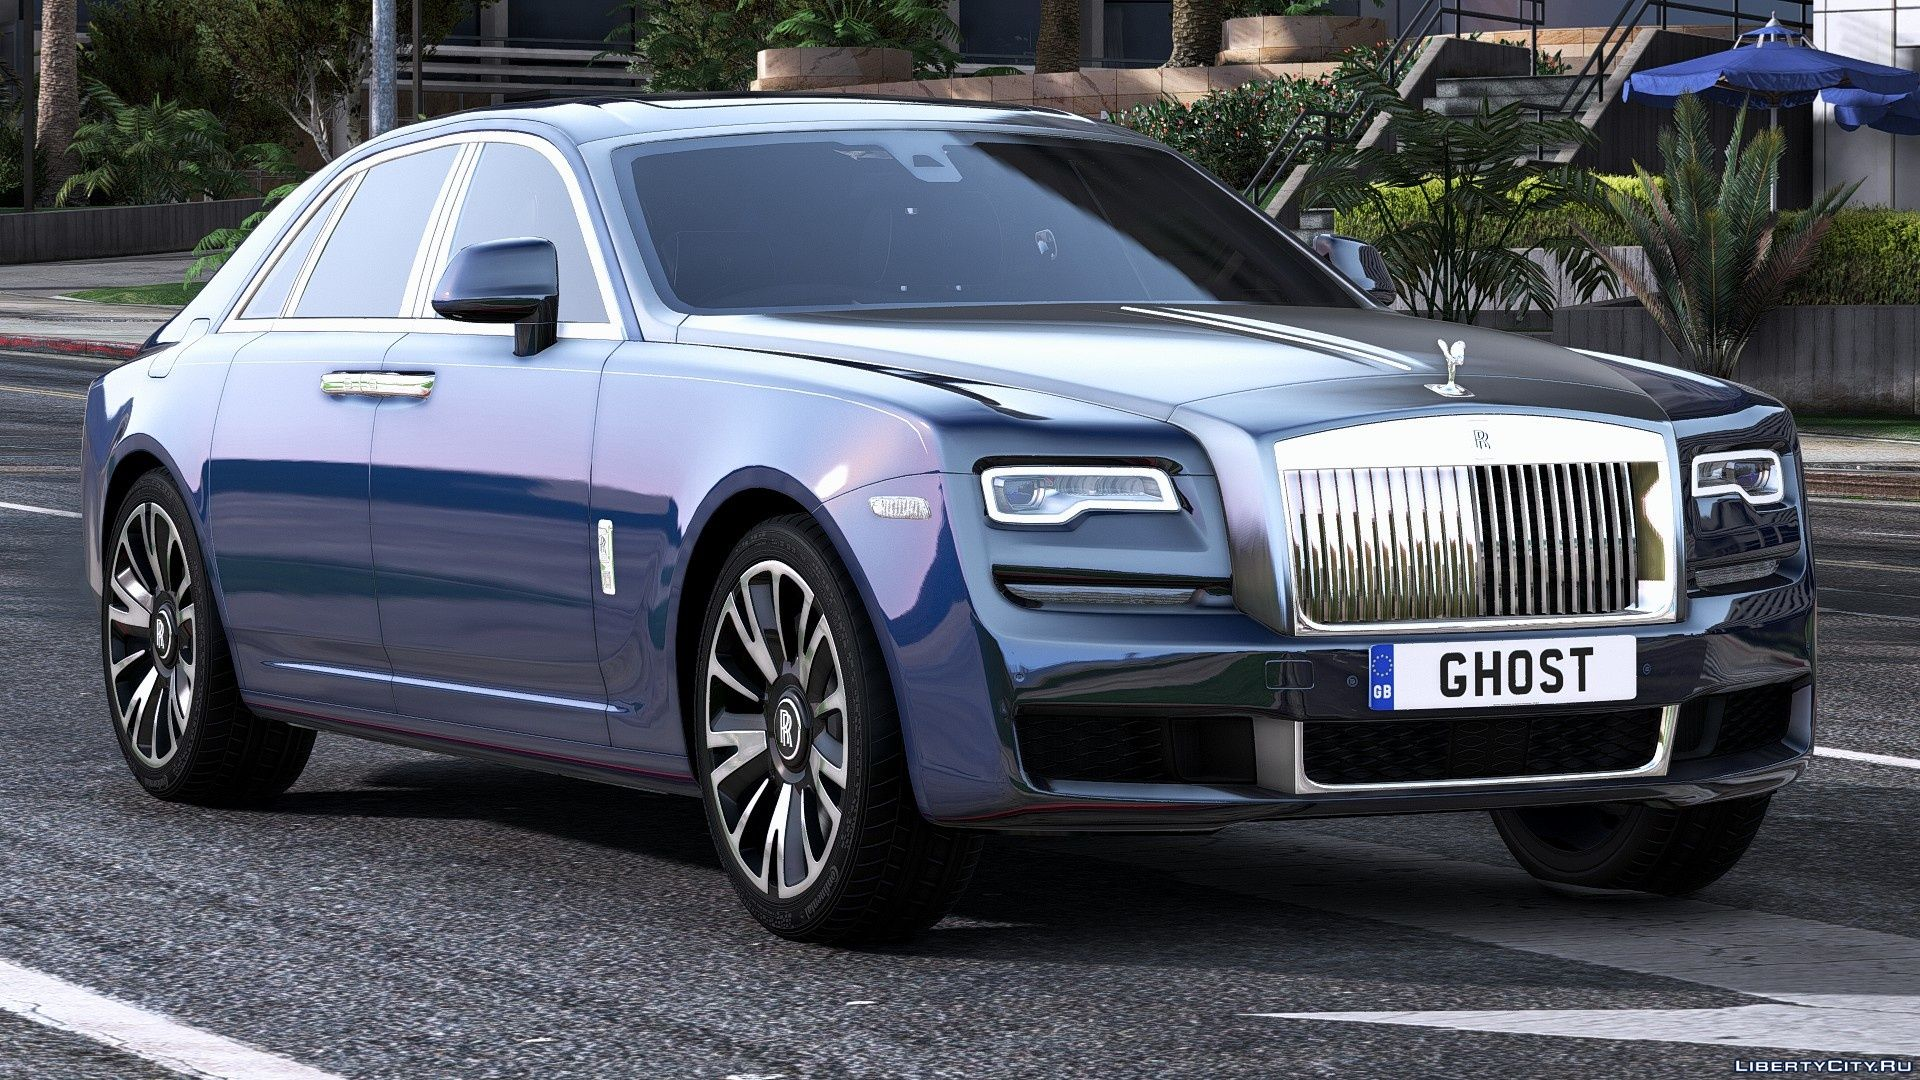 Rolls-Royce for GTA 5: 26 Rolls-Royce car for GTA 5